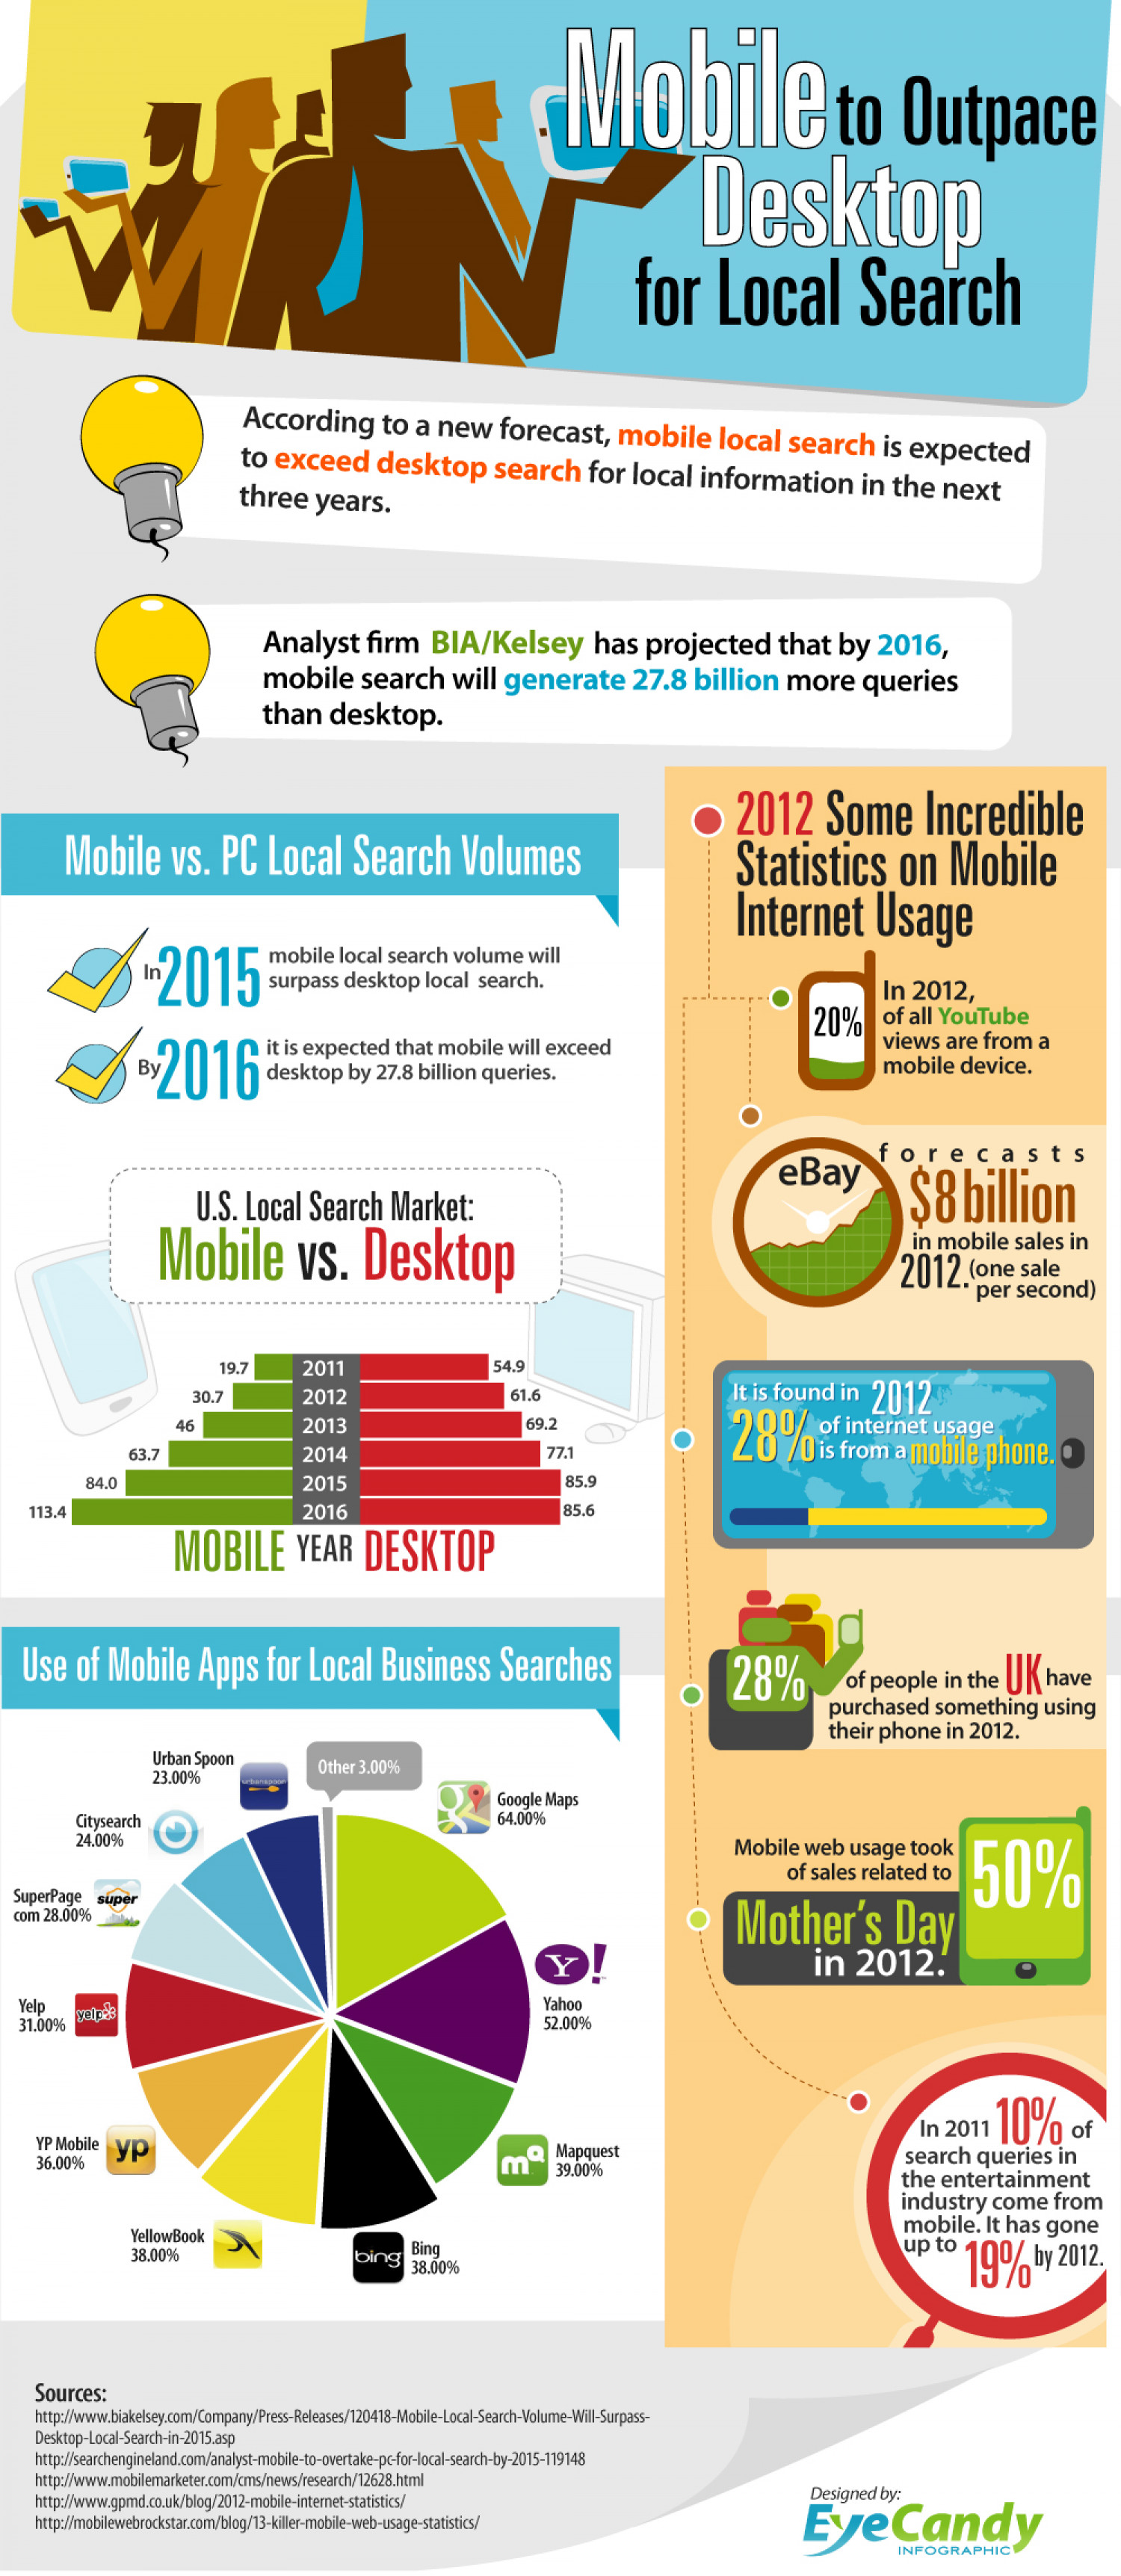 Mobile to Outpace Desktop for Local Search Infographic